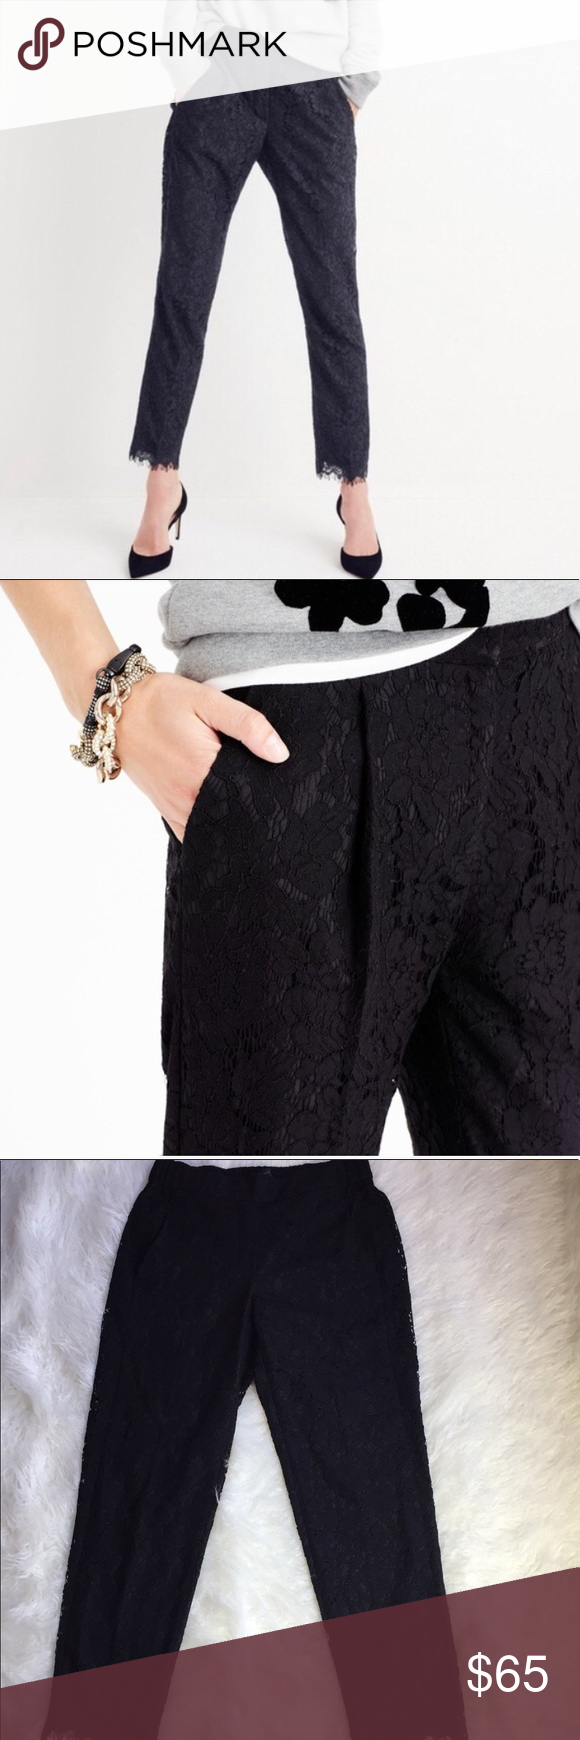 47664ebb J Crew Easy pant in lace black J. Crew easy pants in black lace with ...